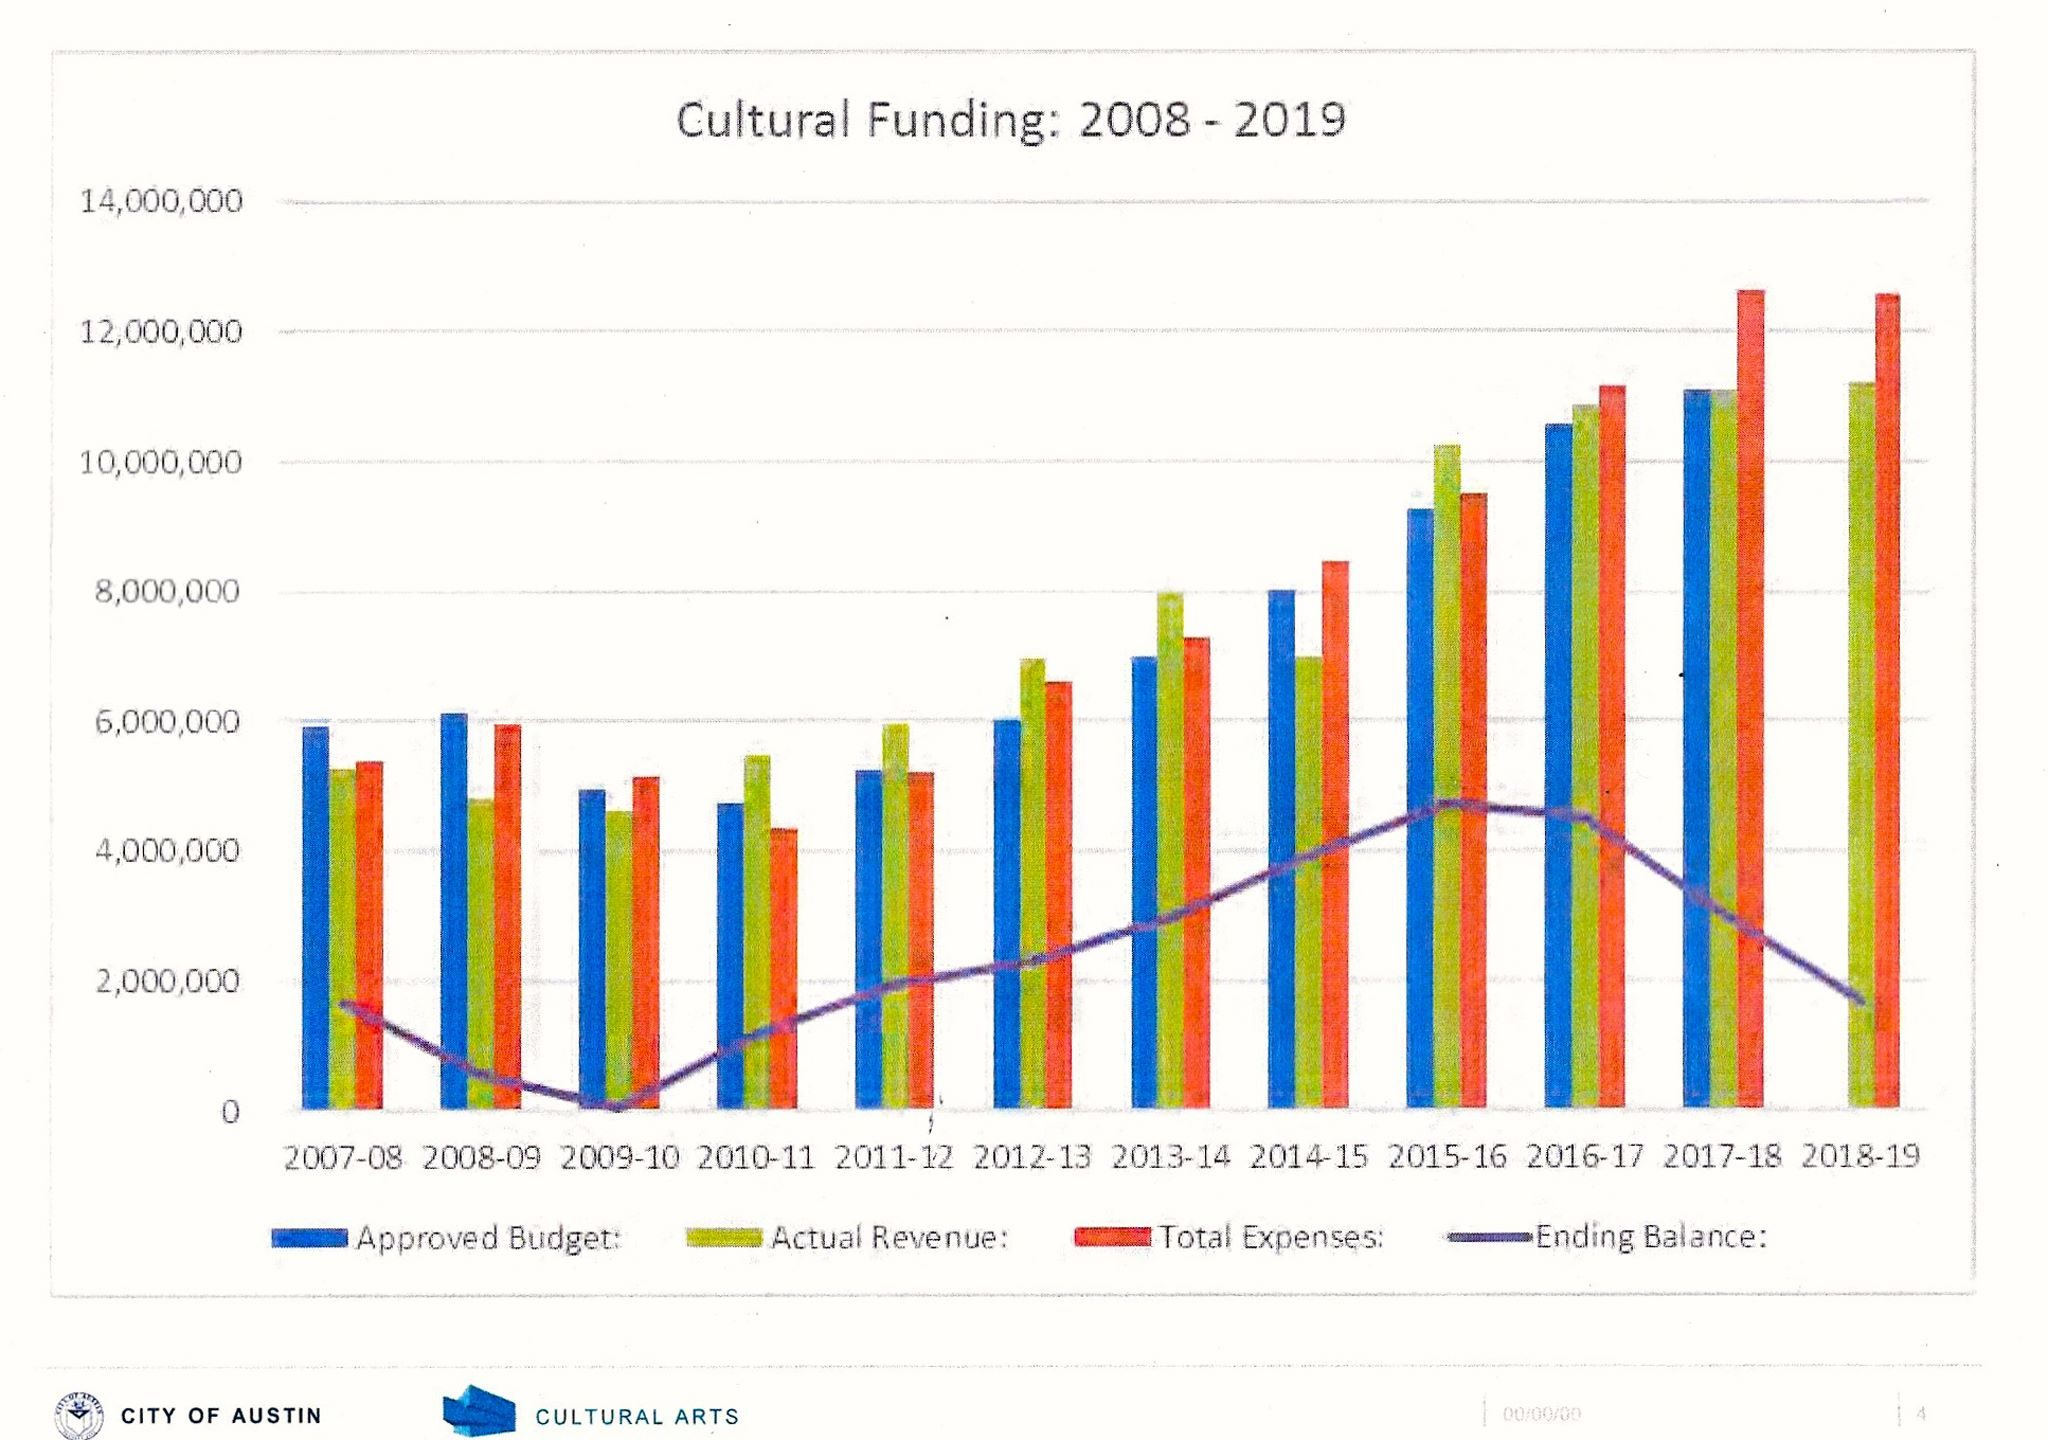 City of Austin Cultural Arts Funding 2008-2019.